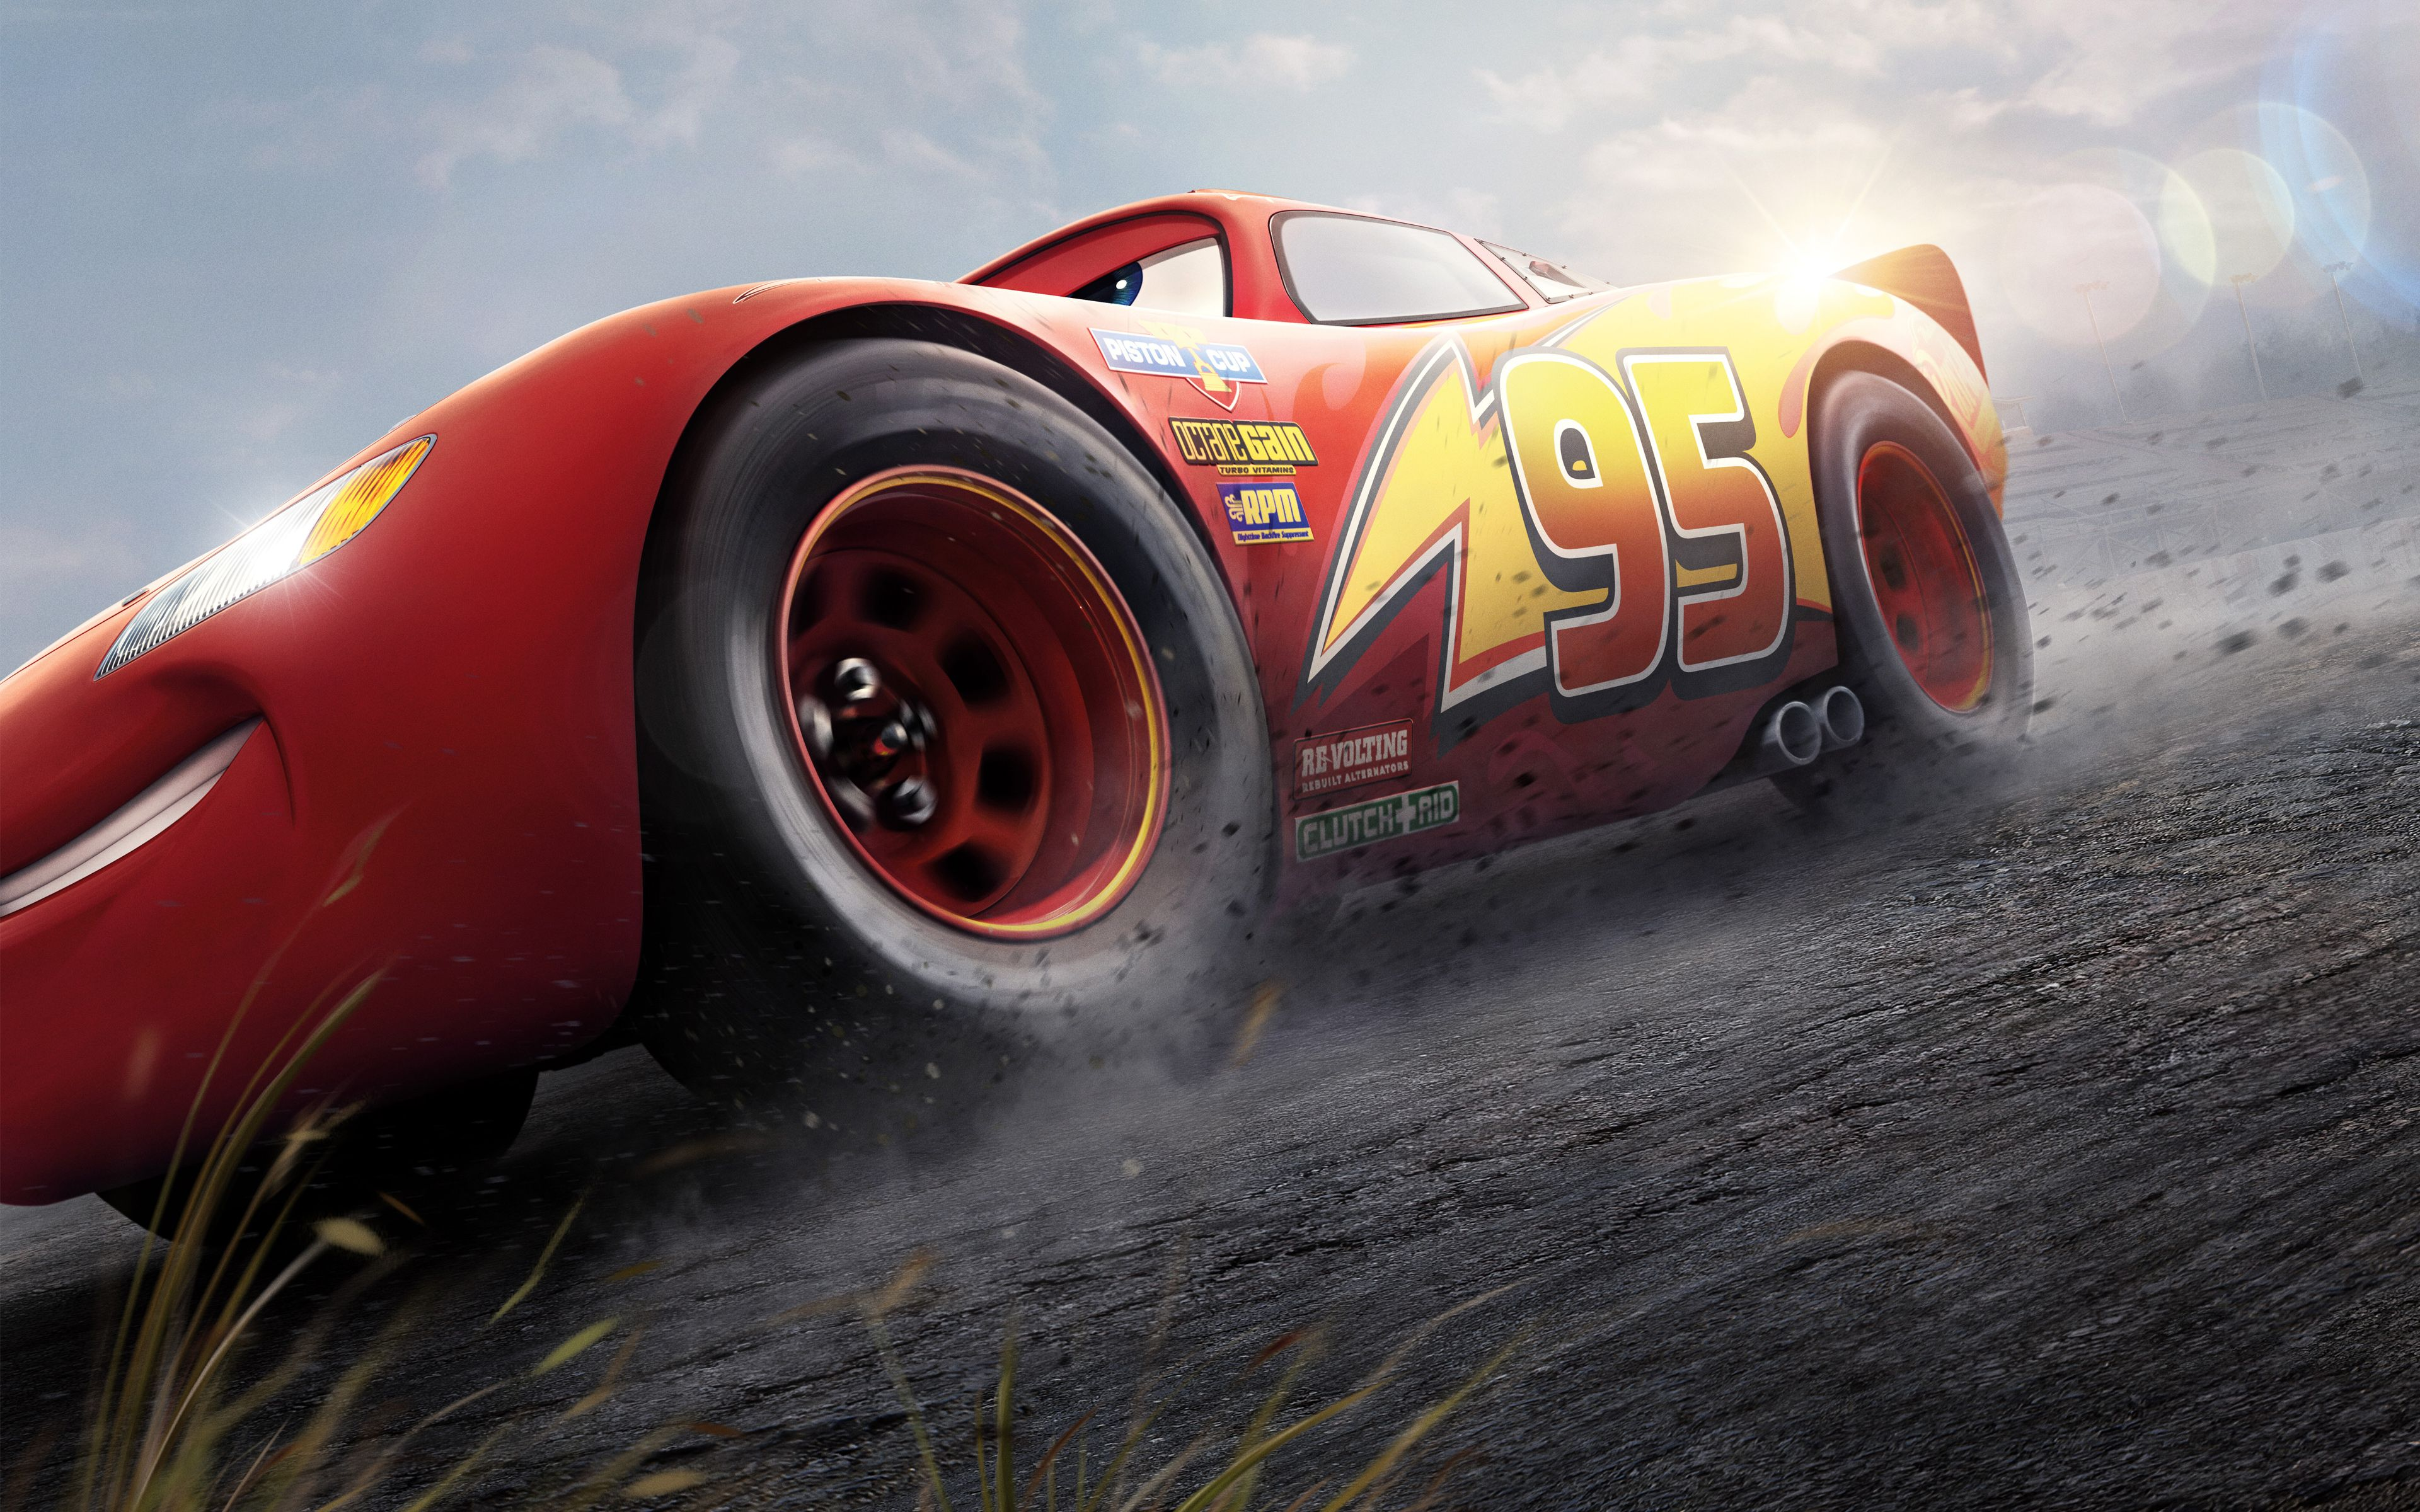 Lightning mcqueen cars 3 4k 8k movies mcqueen cars 3 - Cars 3 wallpaper ...